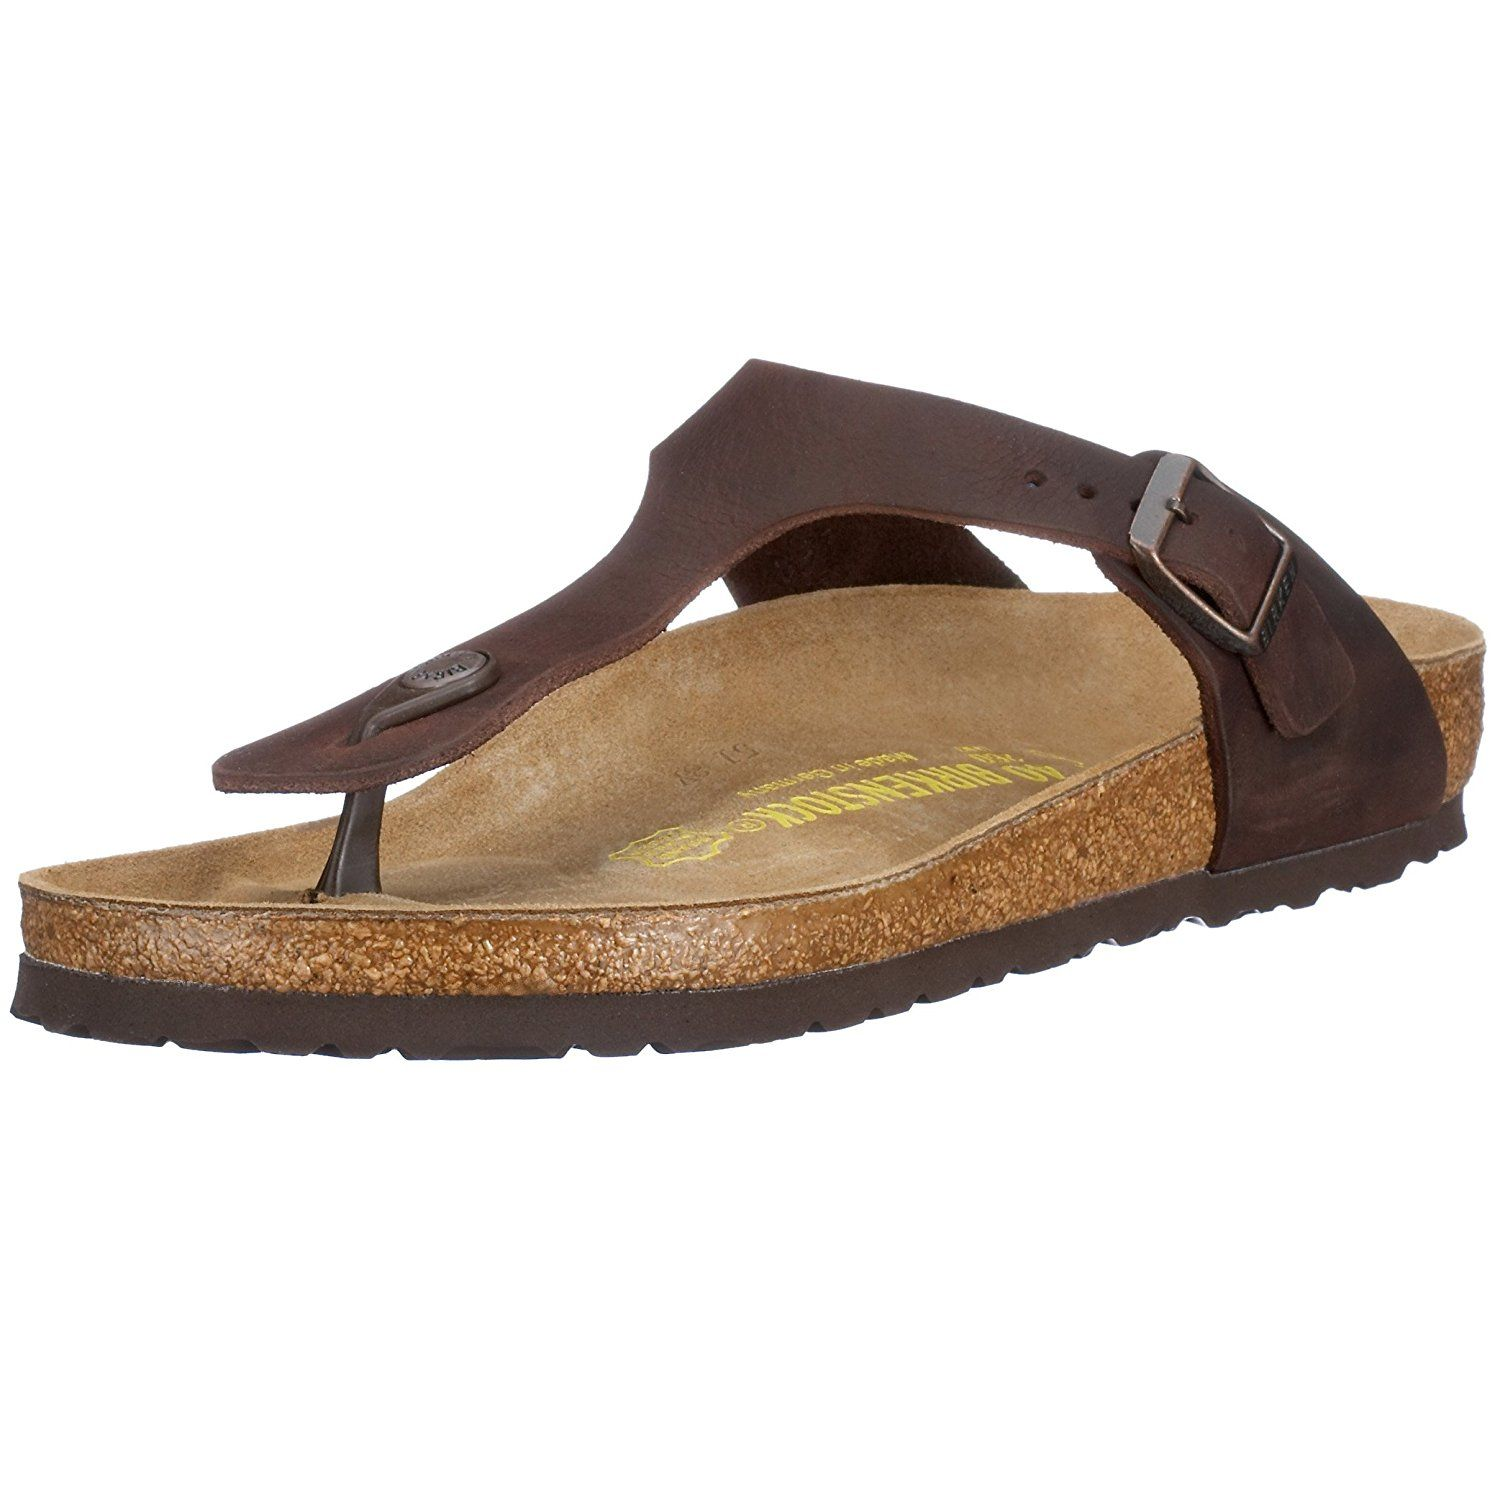 Birkenstock Women s Gizeh Cork Footbed Thong Sandal   Check this awesome  image   Women s Flats Sandals ec7b33886d